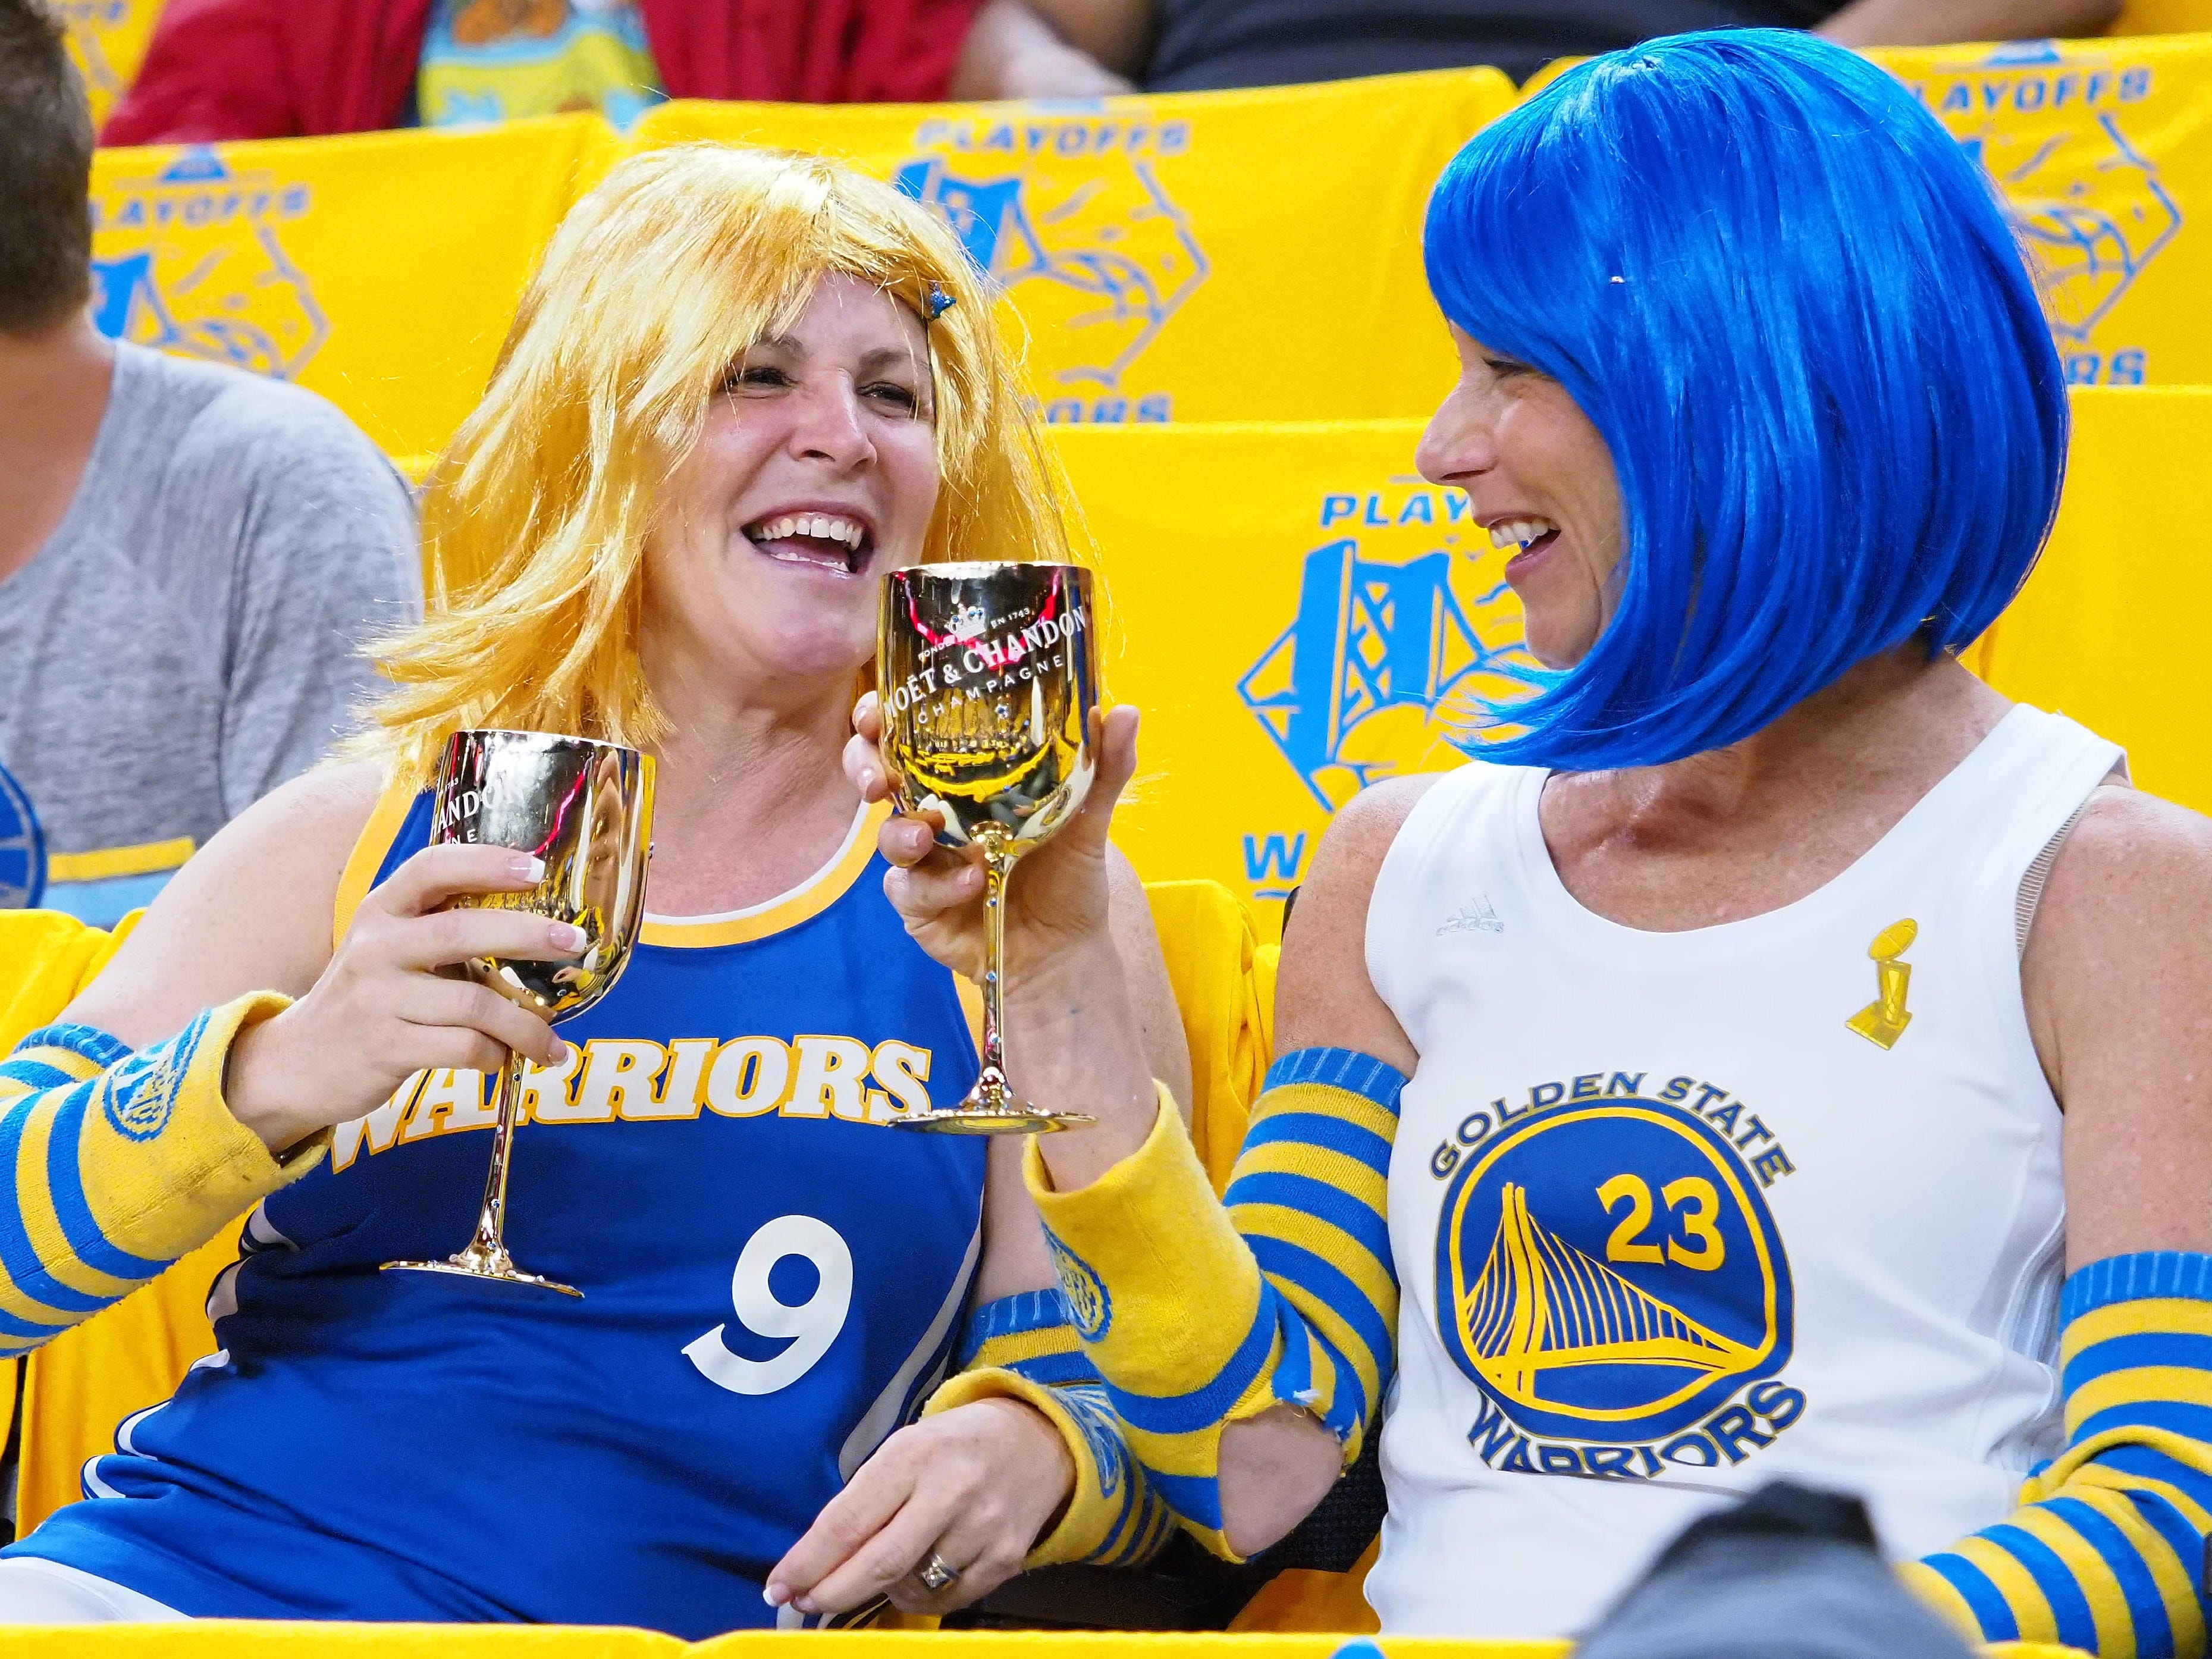 April 24: Warriors fans before Game 5 against the Clippers.